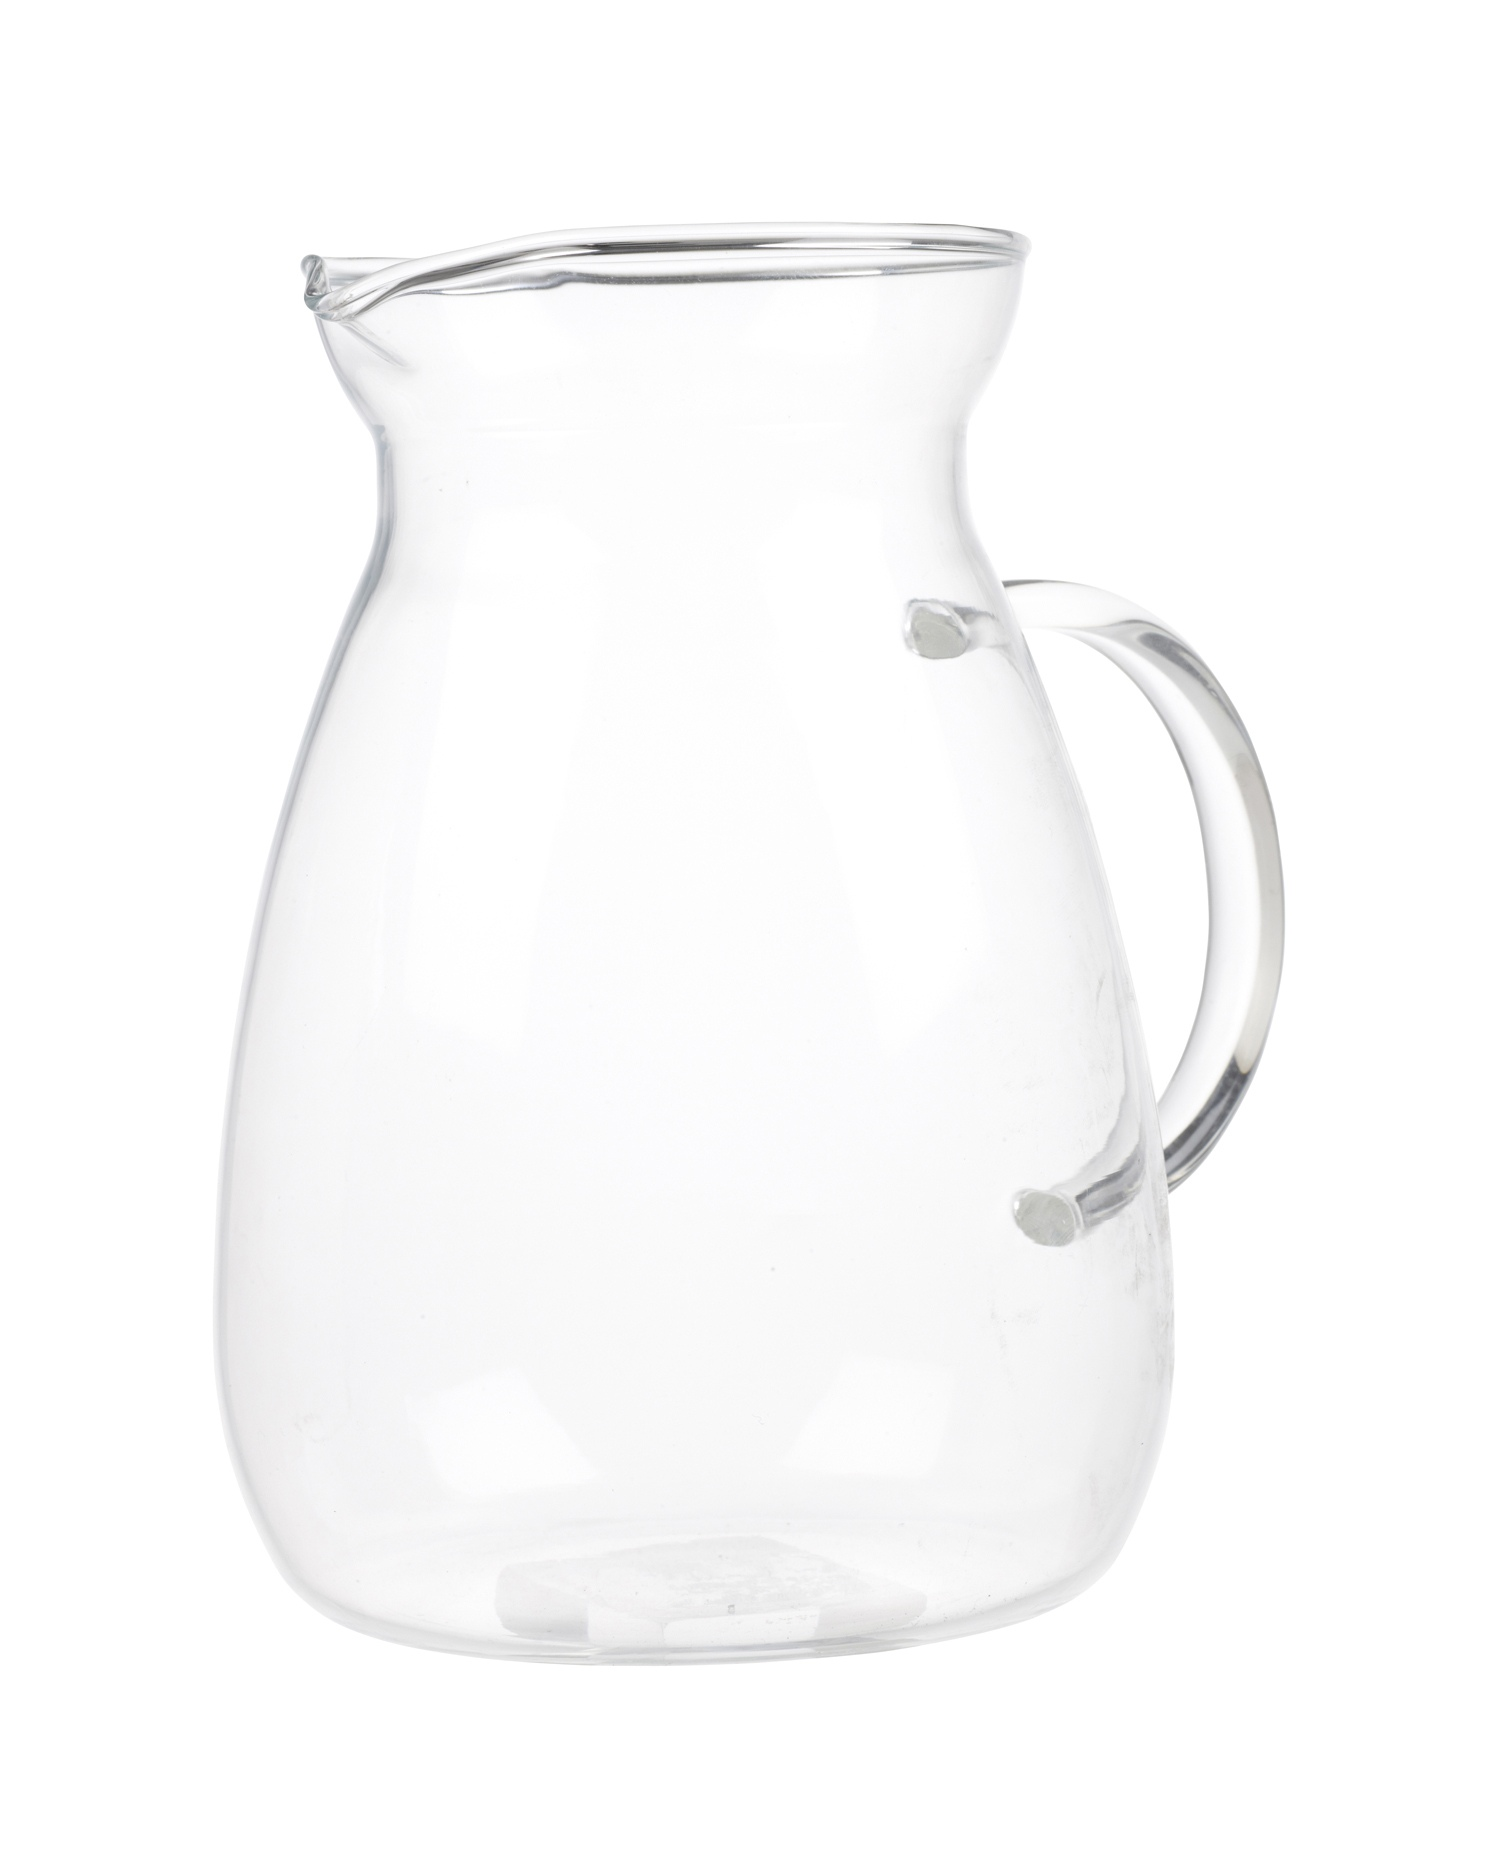 Heat Proof Pitcher Termisil Heat Proof Resistant Jug Borosilicate Clear Glass